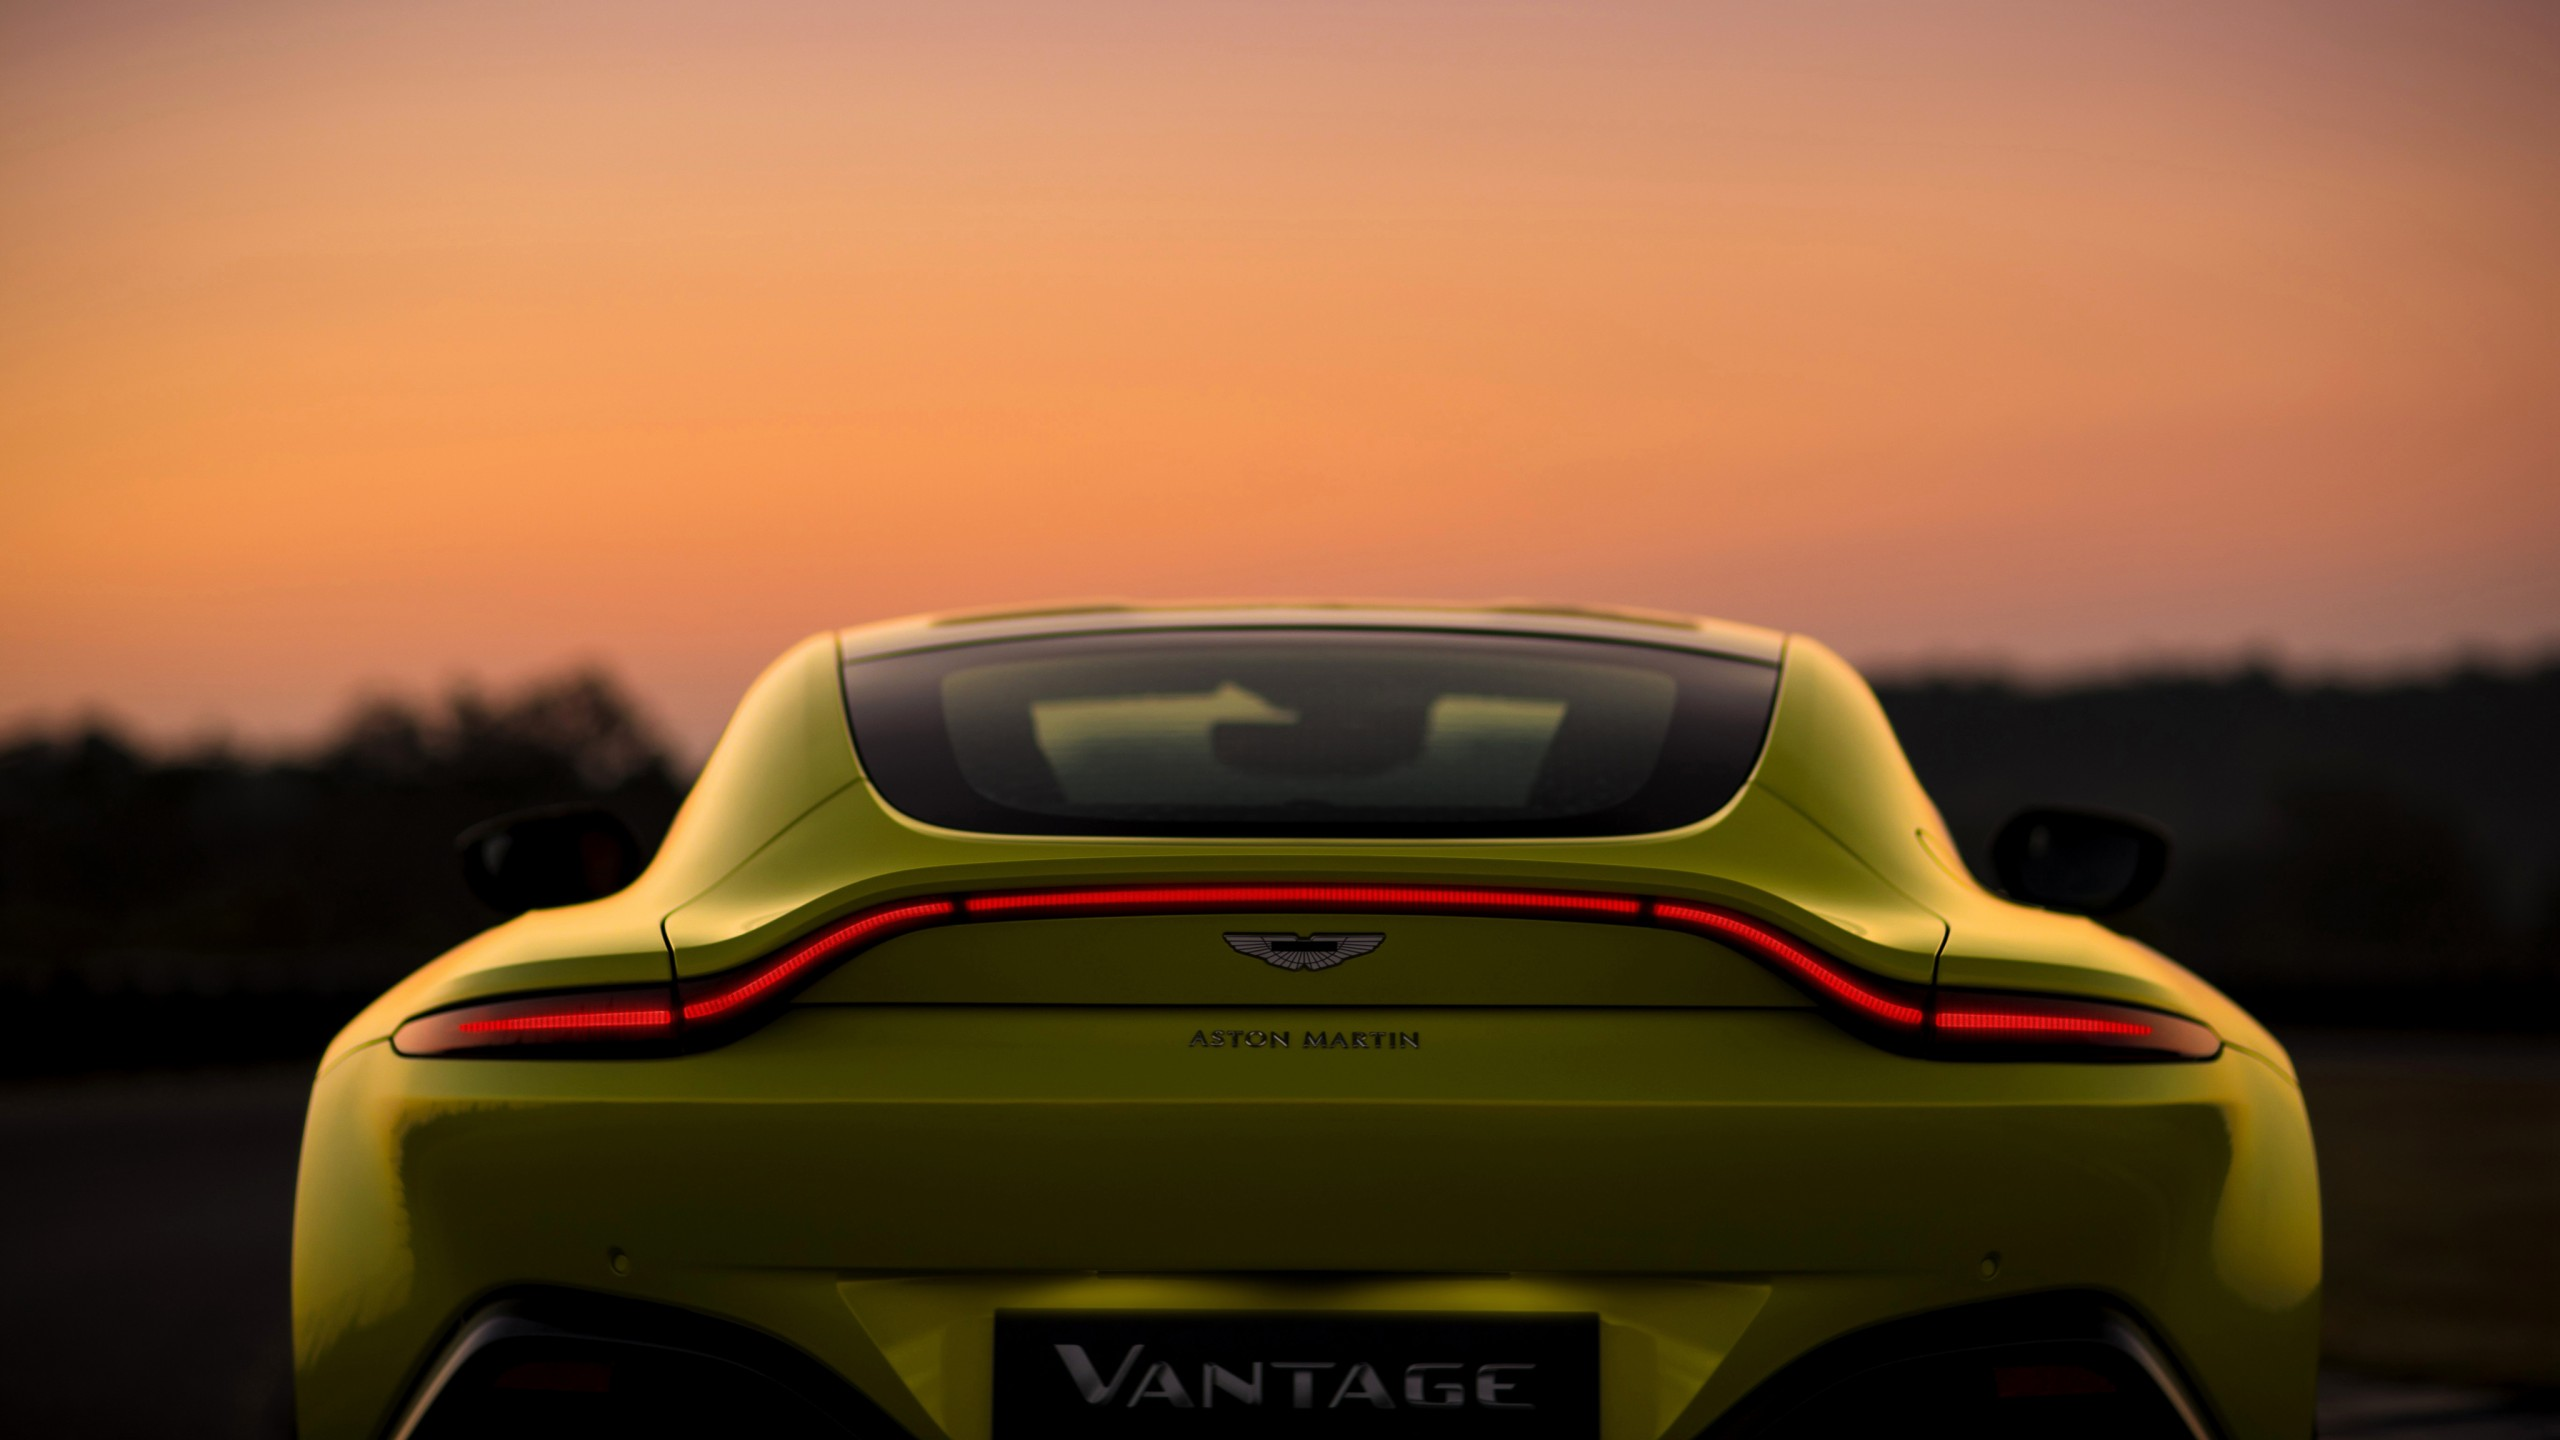 2018 aston martin vantage 4k 4 wallpaper | hd car wallpapers | id #9152